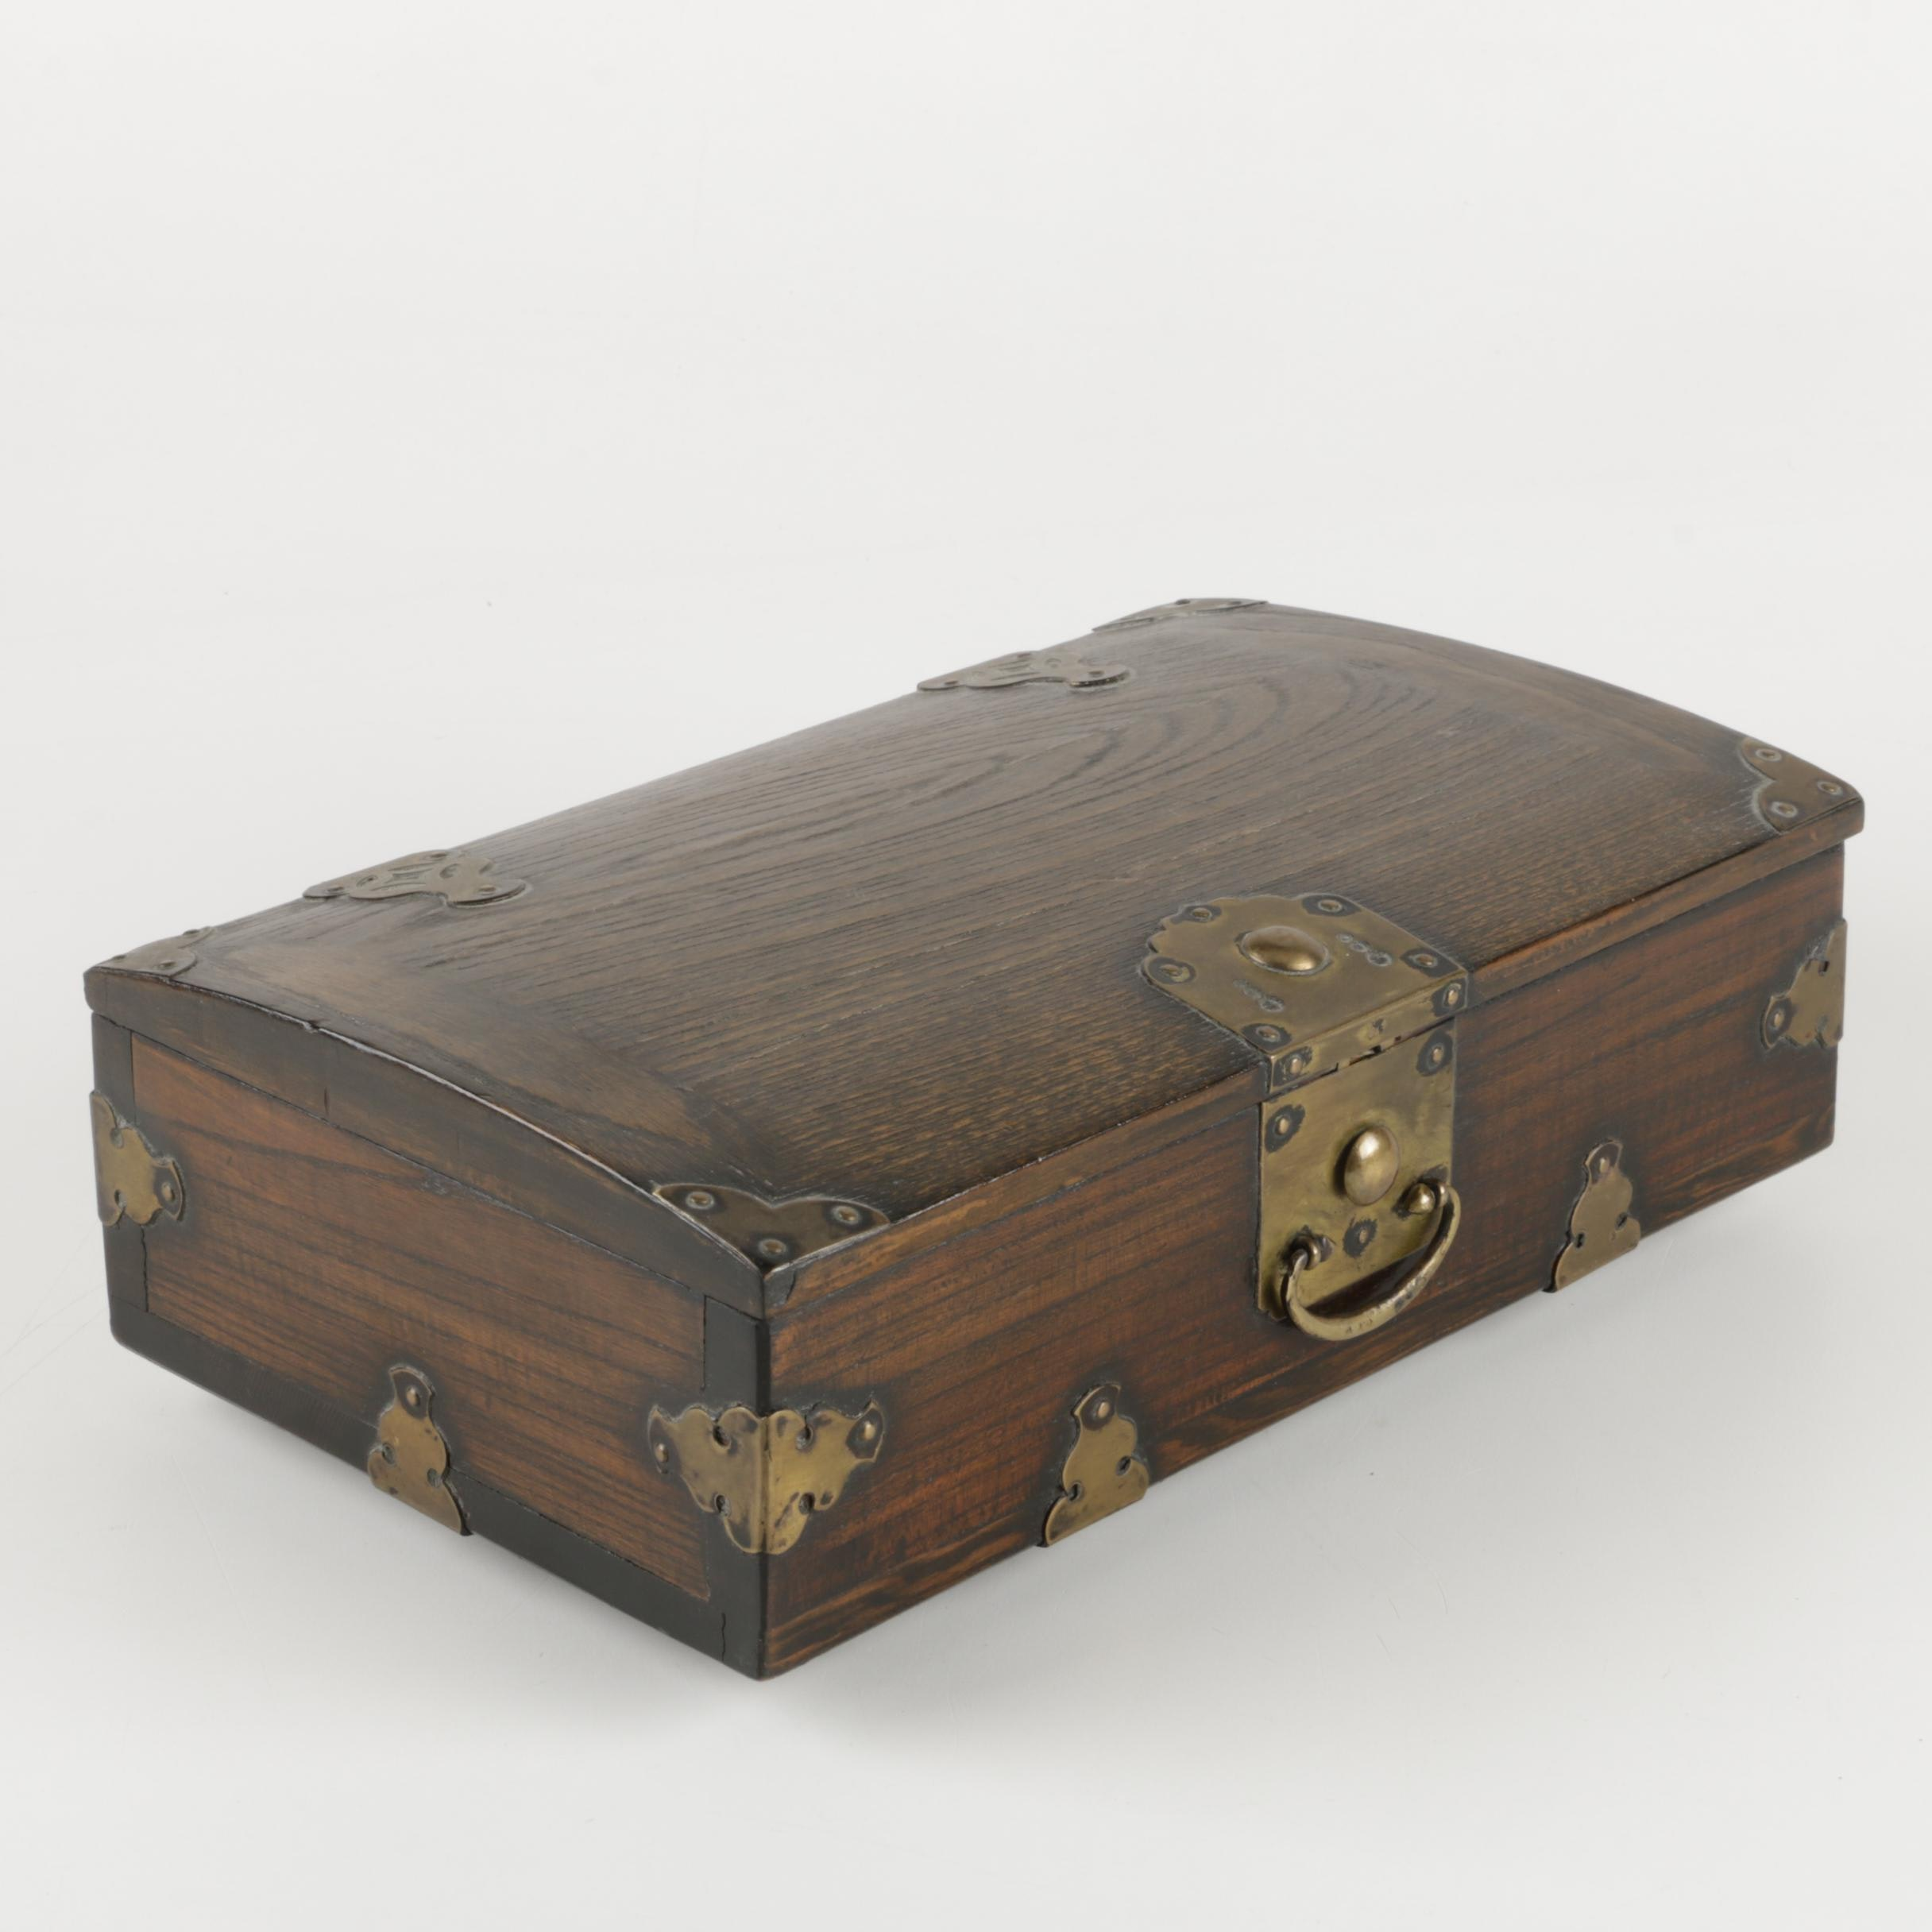 Vintage Wooden Box with a Curved Lid